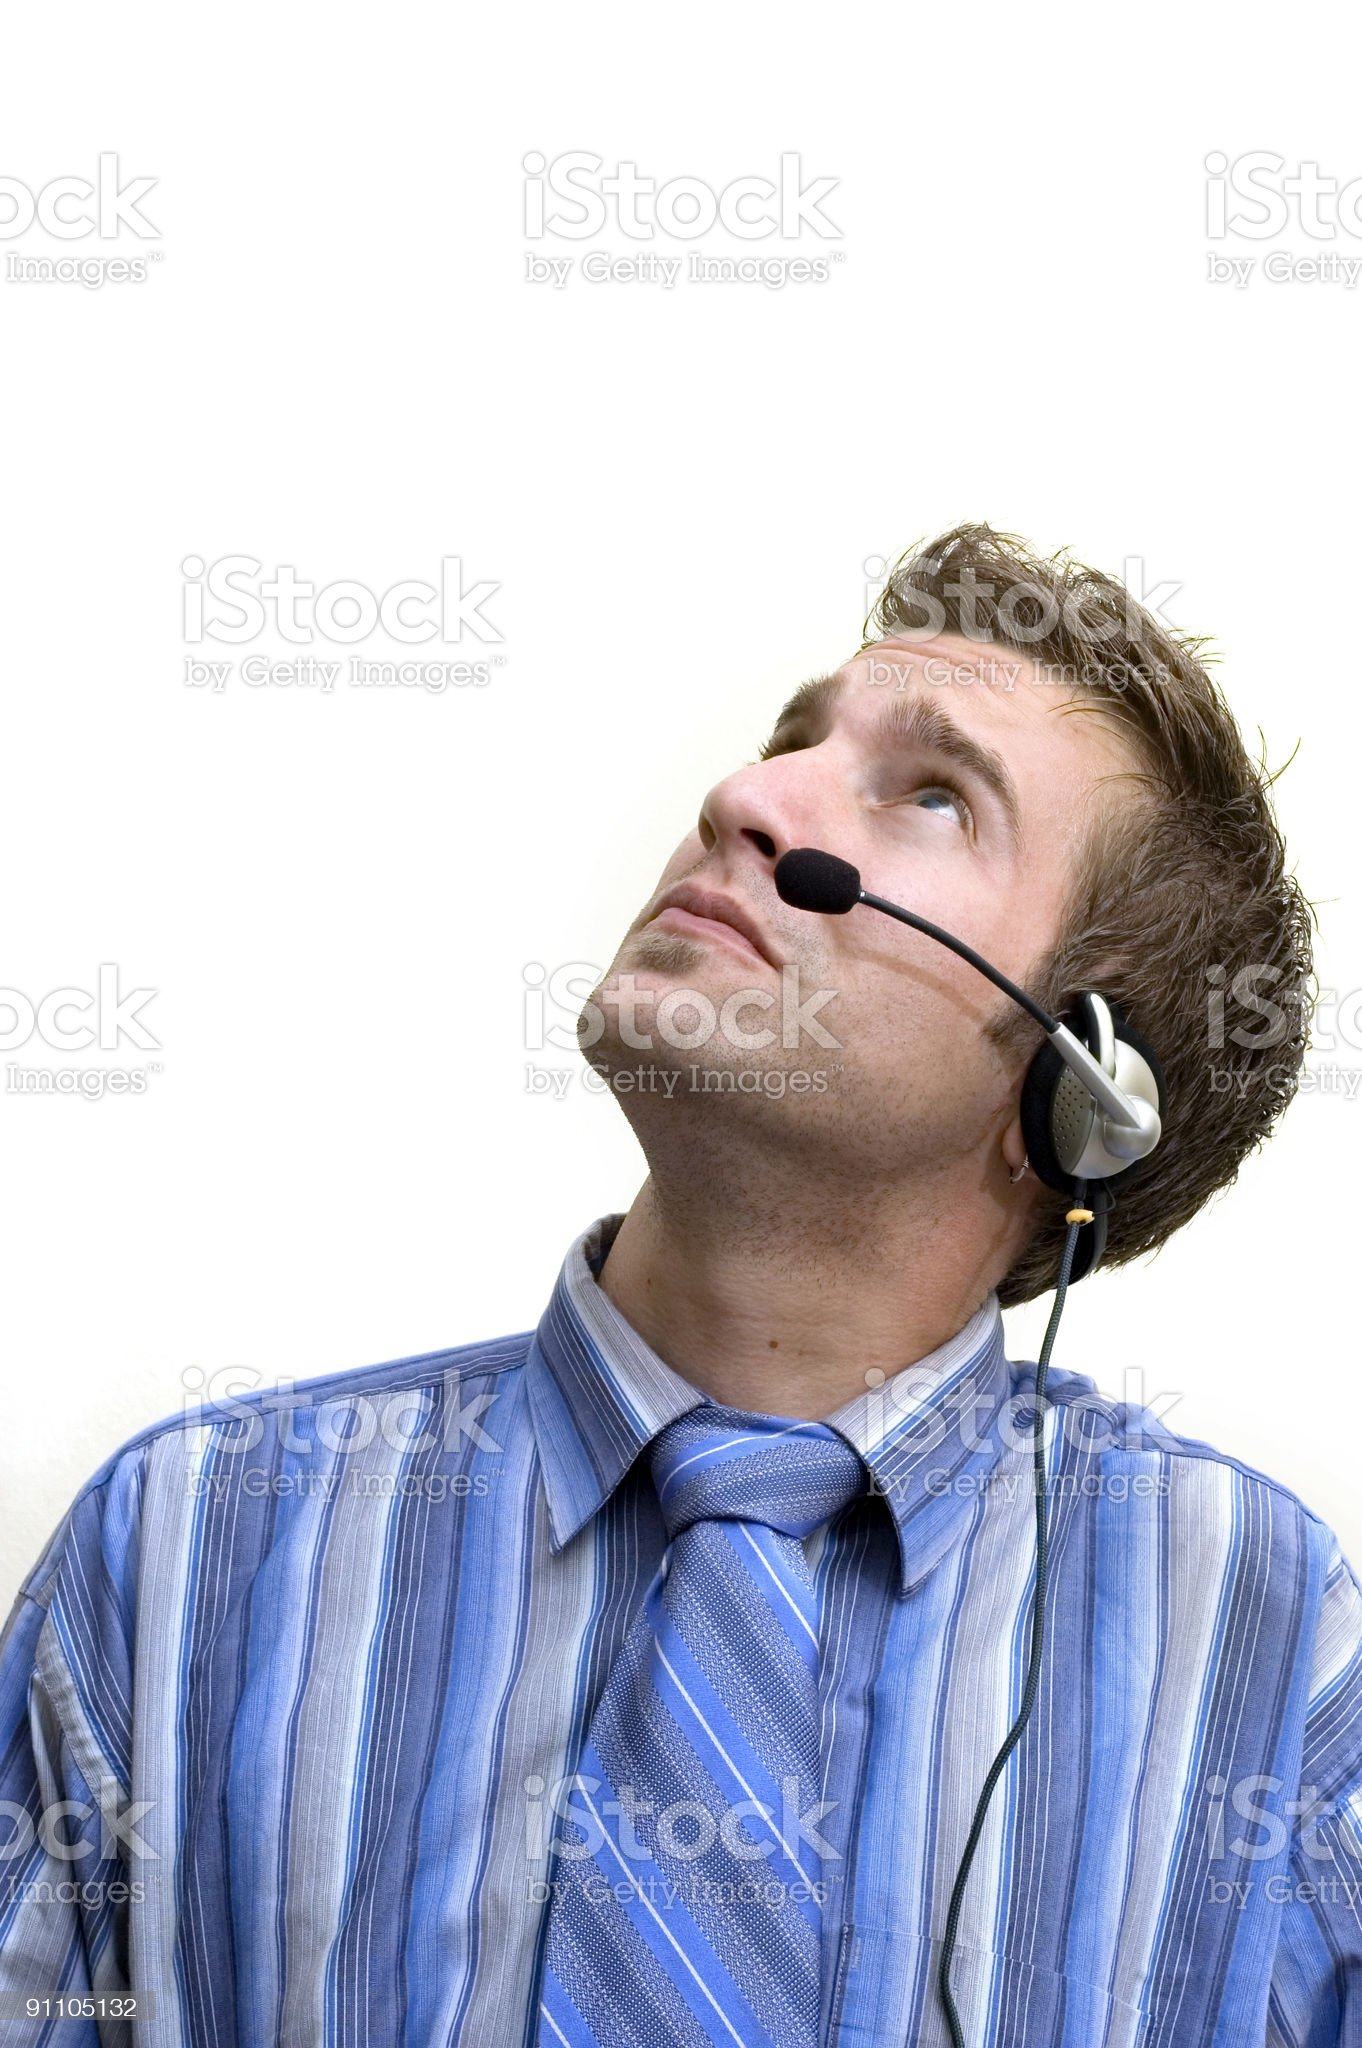 businessman with headset looking up royalty-free stock photo